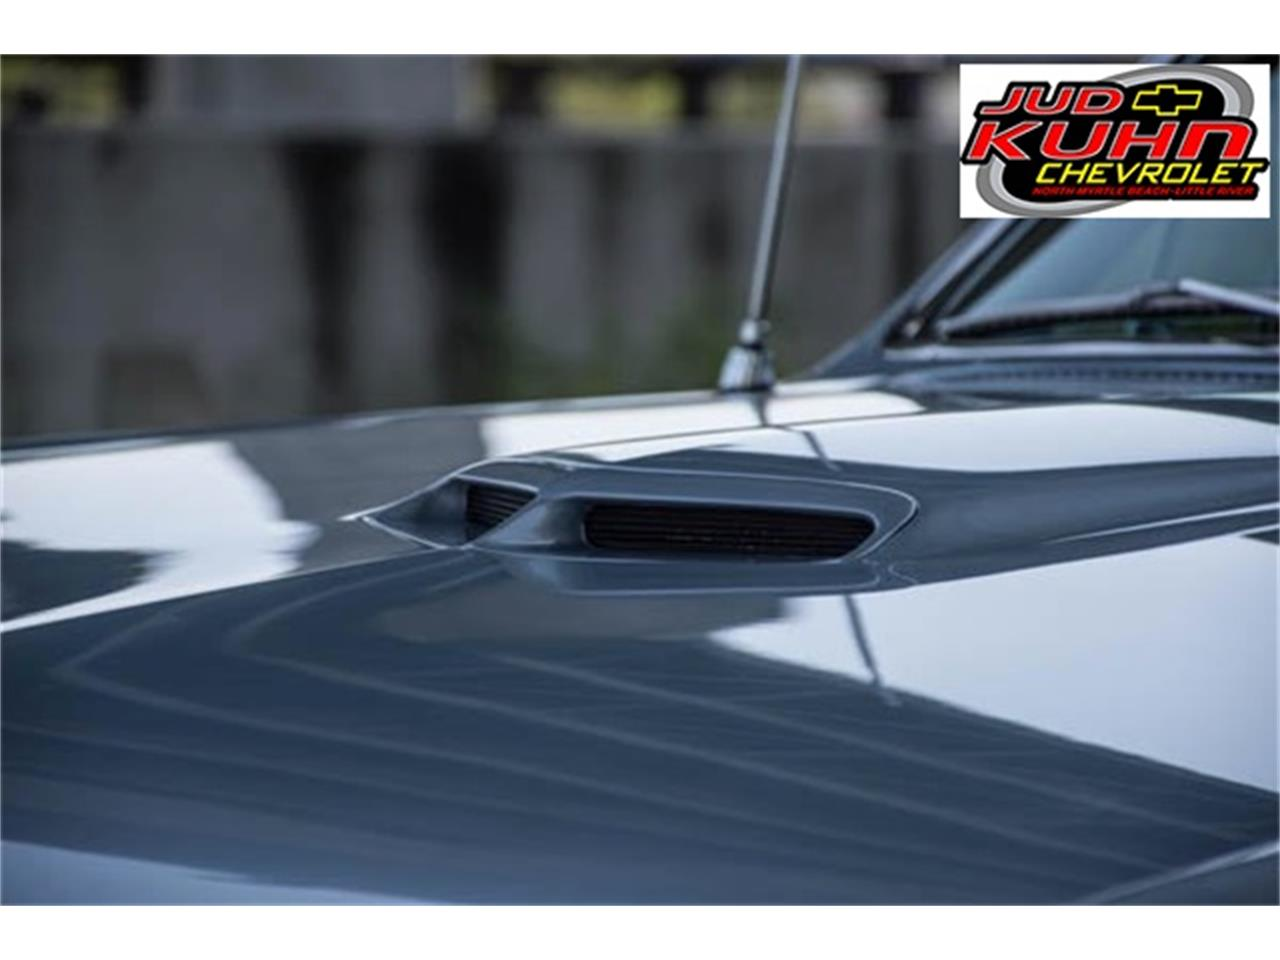 Large Picture of '65 GTO located in South Carolina - $42,500.00 Offered by Jud Kuhn Chevrolet - J909